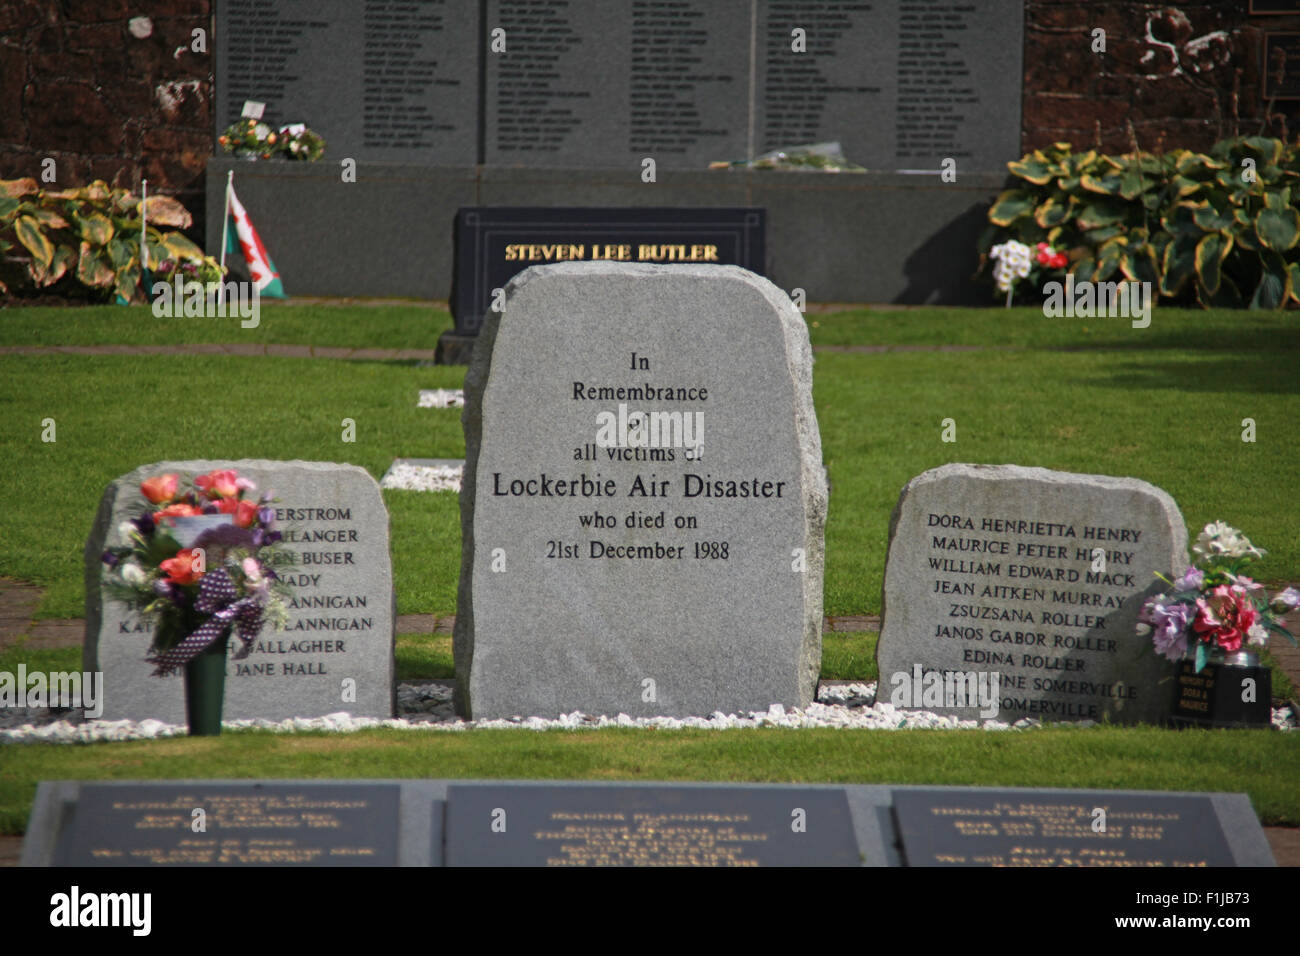 Garden,Scotland,Lodge,Visitors,Centre,DLVC,Trust,Lockerbie,Memorial,Scotland,Victims,Pan,Am,PanAm,flight,103,bomb,bombing,terrorist,December,1988,attack,crash,dead,site,21/12/1988,270,victims,Scottish,Town,conspiracy,blast,Tundergarth,Room,garden,of,Dryfesdale,Cemetery,news,Cultural,und,New York,GoTonySmith,Lodge,Visitors,Centre,DLVC,Trust,Lockerbie,Memorial,Scotland,Victims,Pan,Am,PanAm,flight,103,bomb,bombing,terrorist,December,1988,attack,crash,dead,site,21/12/1988,270,victims,Scottish,Town,conspiracy,blast,Tundergarth,Room,garden,of,Dryfesdale,Cemetery,news,Cultural,understanding,remembering,innocent,transatlantic,Frankfurt,Detroit,Libyan,Libya,Colonel Muammar Gaddafi,civil,case,compensation,terrorism,PA103,30,30years,years,Syracuse,University,SU,family,collections,Story,Archive,Archives,40,35,Timeline,saga,disaster,air,Scholars,program,programs,remembrance,Clipper Maid of the Seas,N739PA,Boeing,727,plane,aircraft,Scotland,UK,United Kingdom,GB,Great Britain,resting,place,Buy Pictures of,Buy Images Of,New York,al megrahi,30 Years